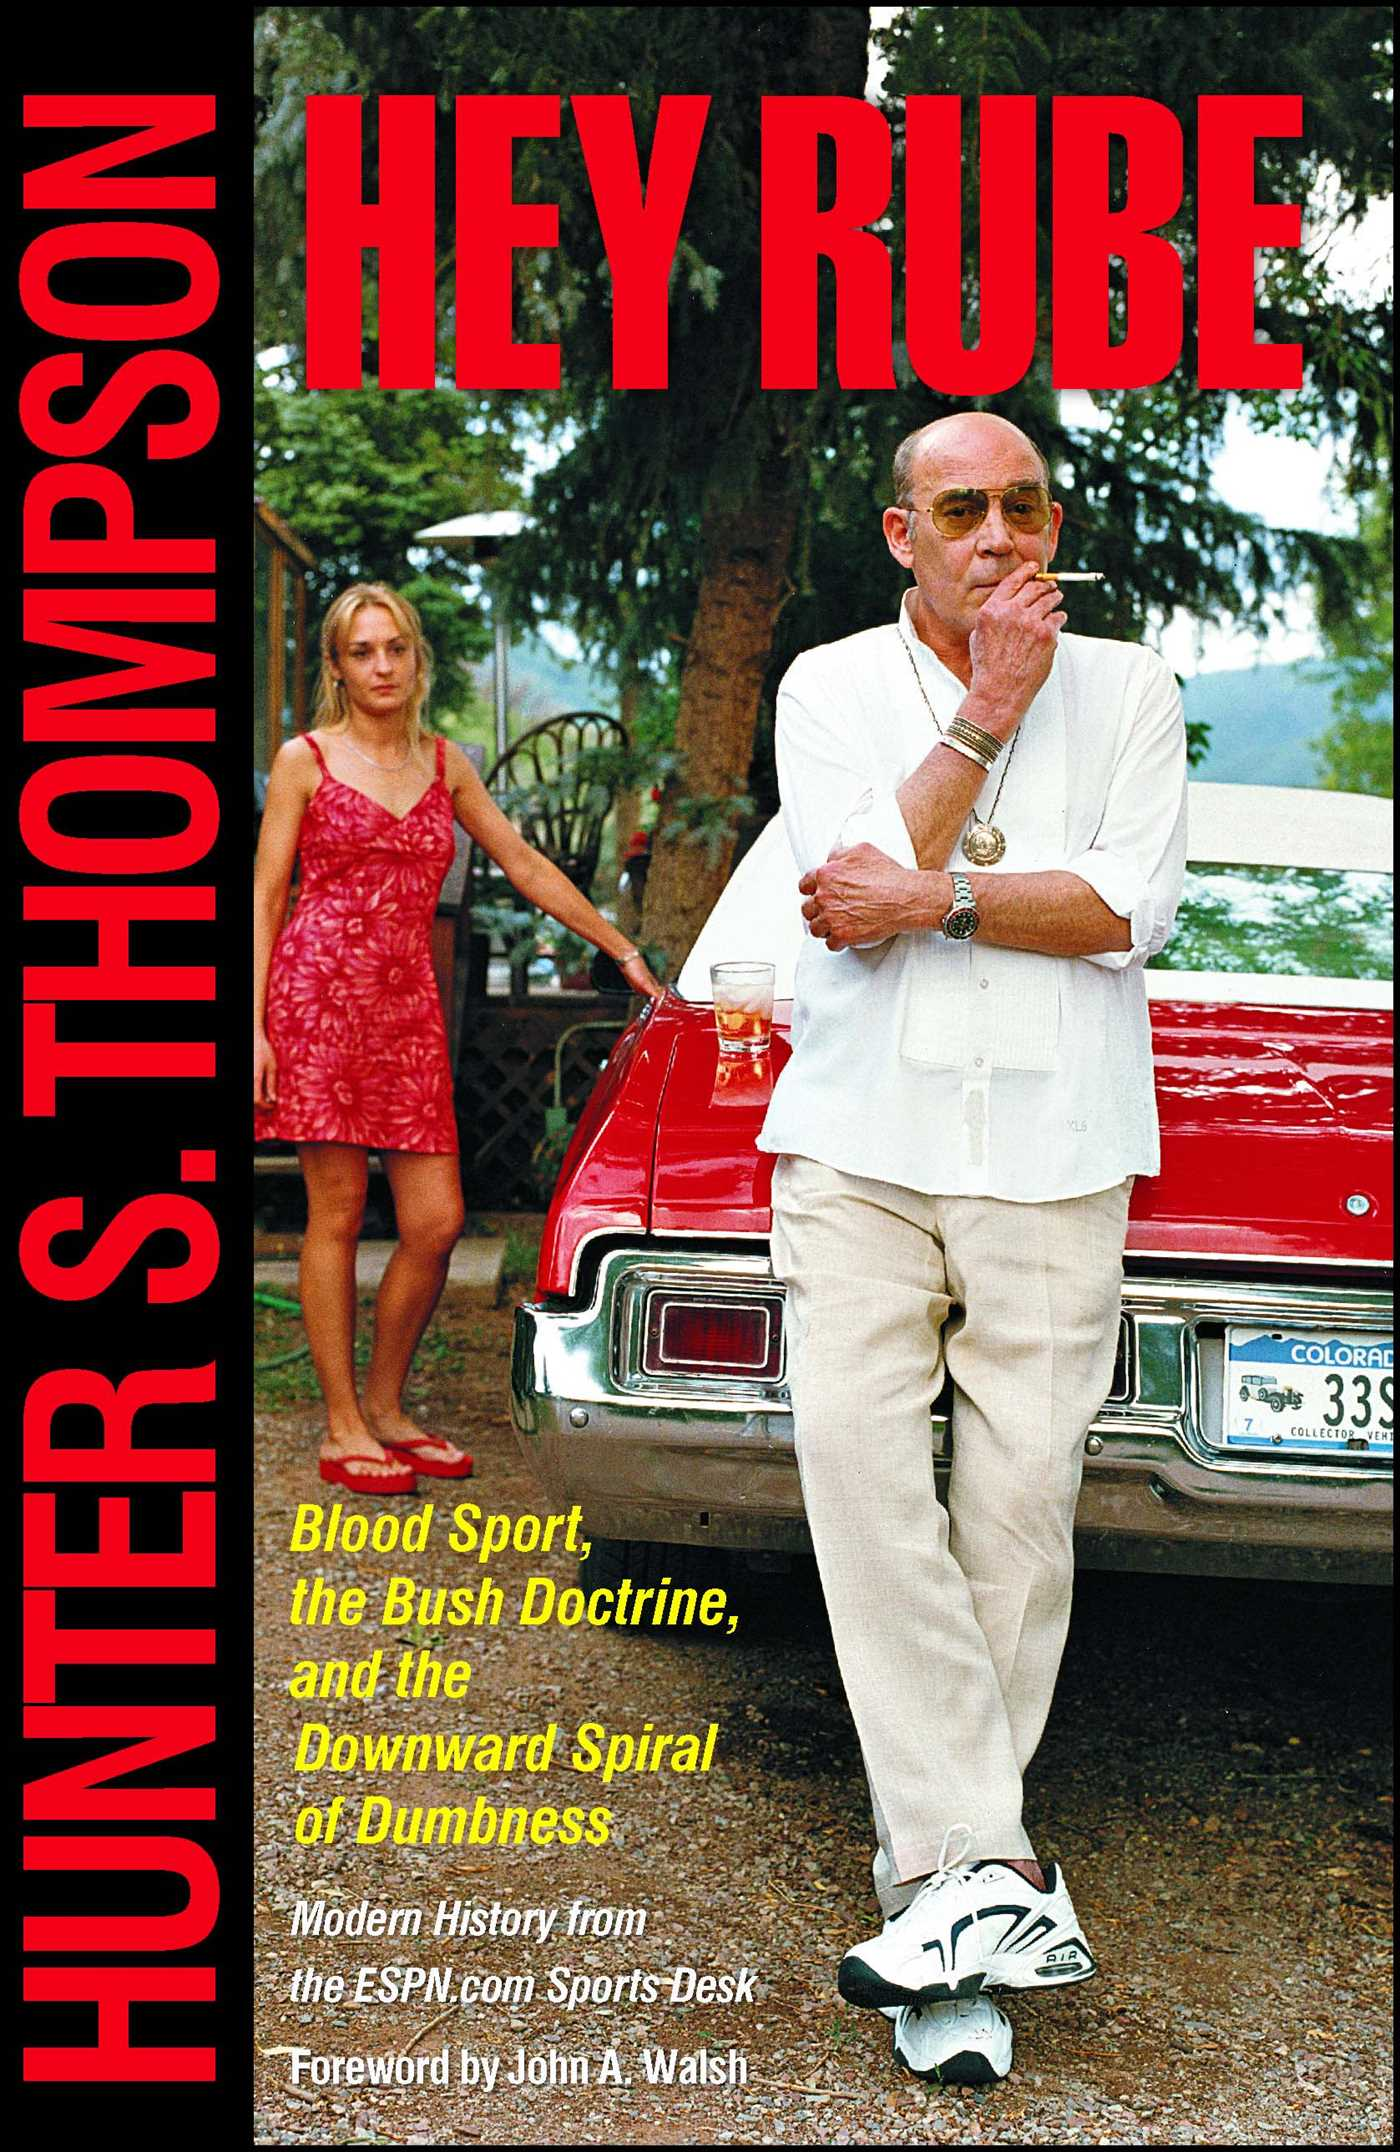 hey rube book by hunter s thompson official publisher page  hey rube 9780684873206 hr